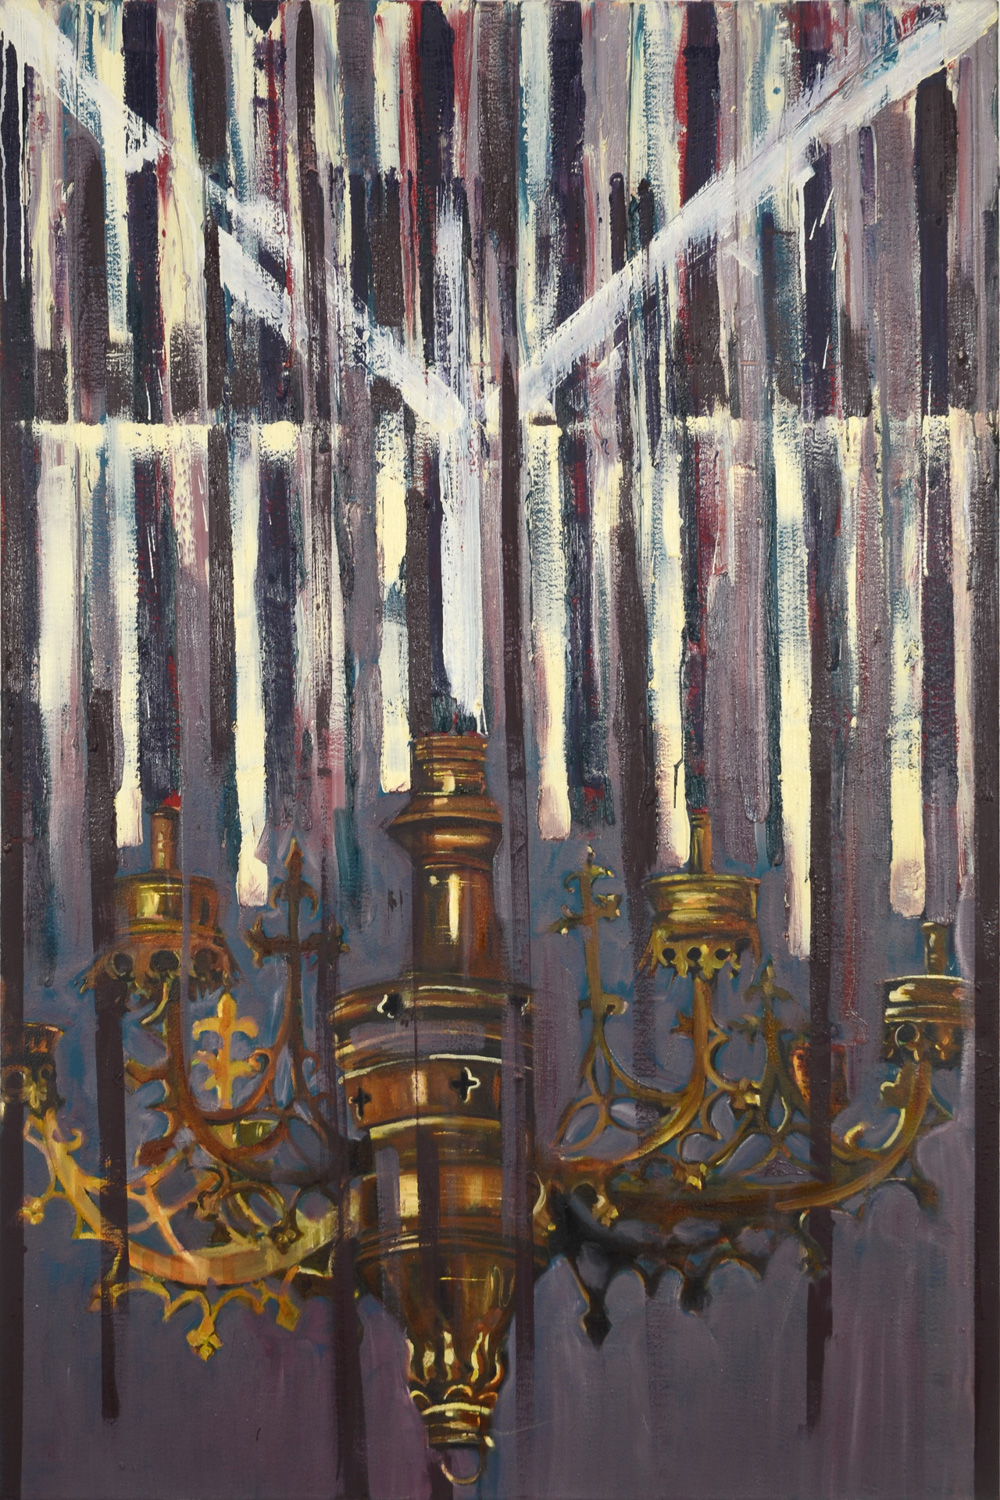 Chandelier II, Oil on canvas, 160x100 cm, 2012